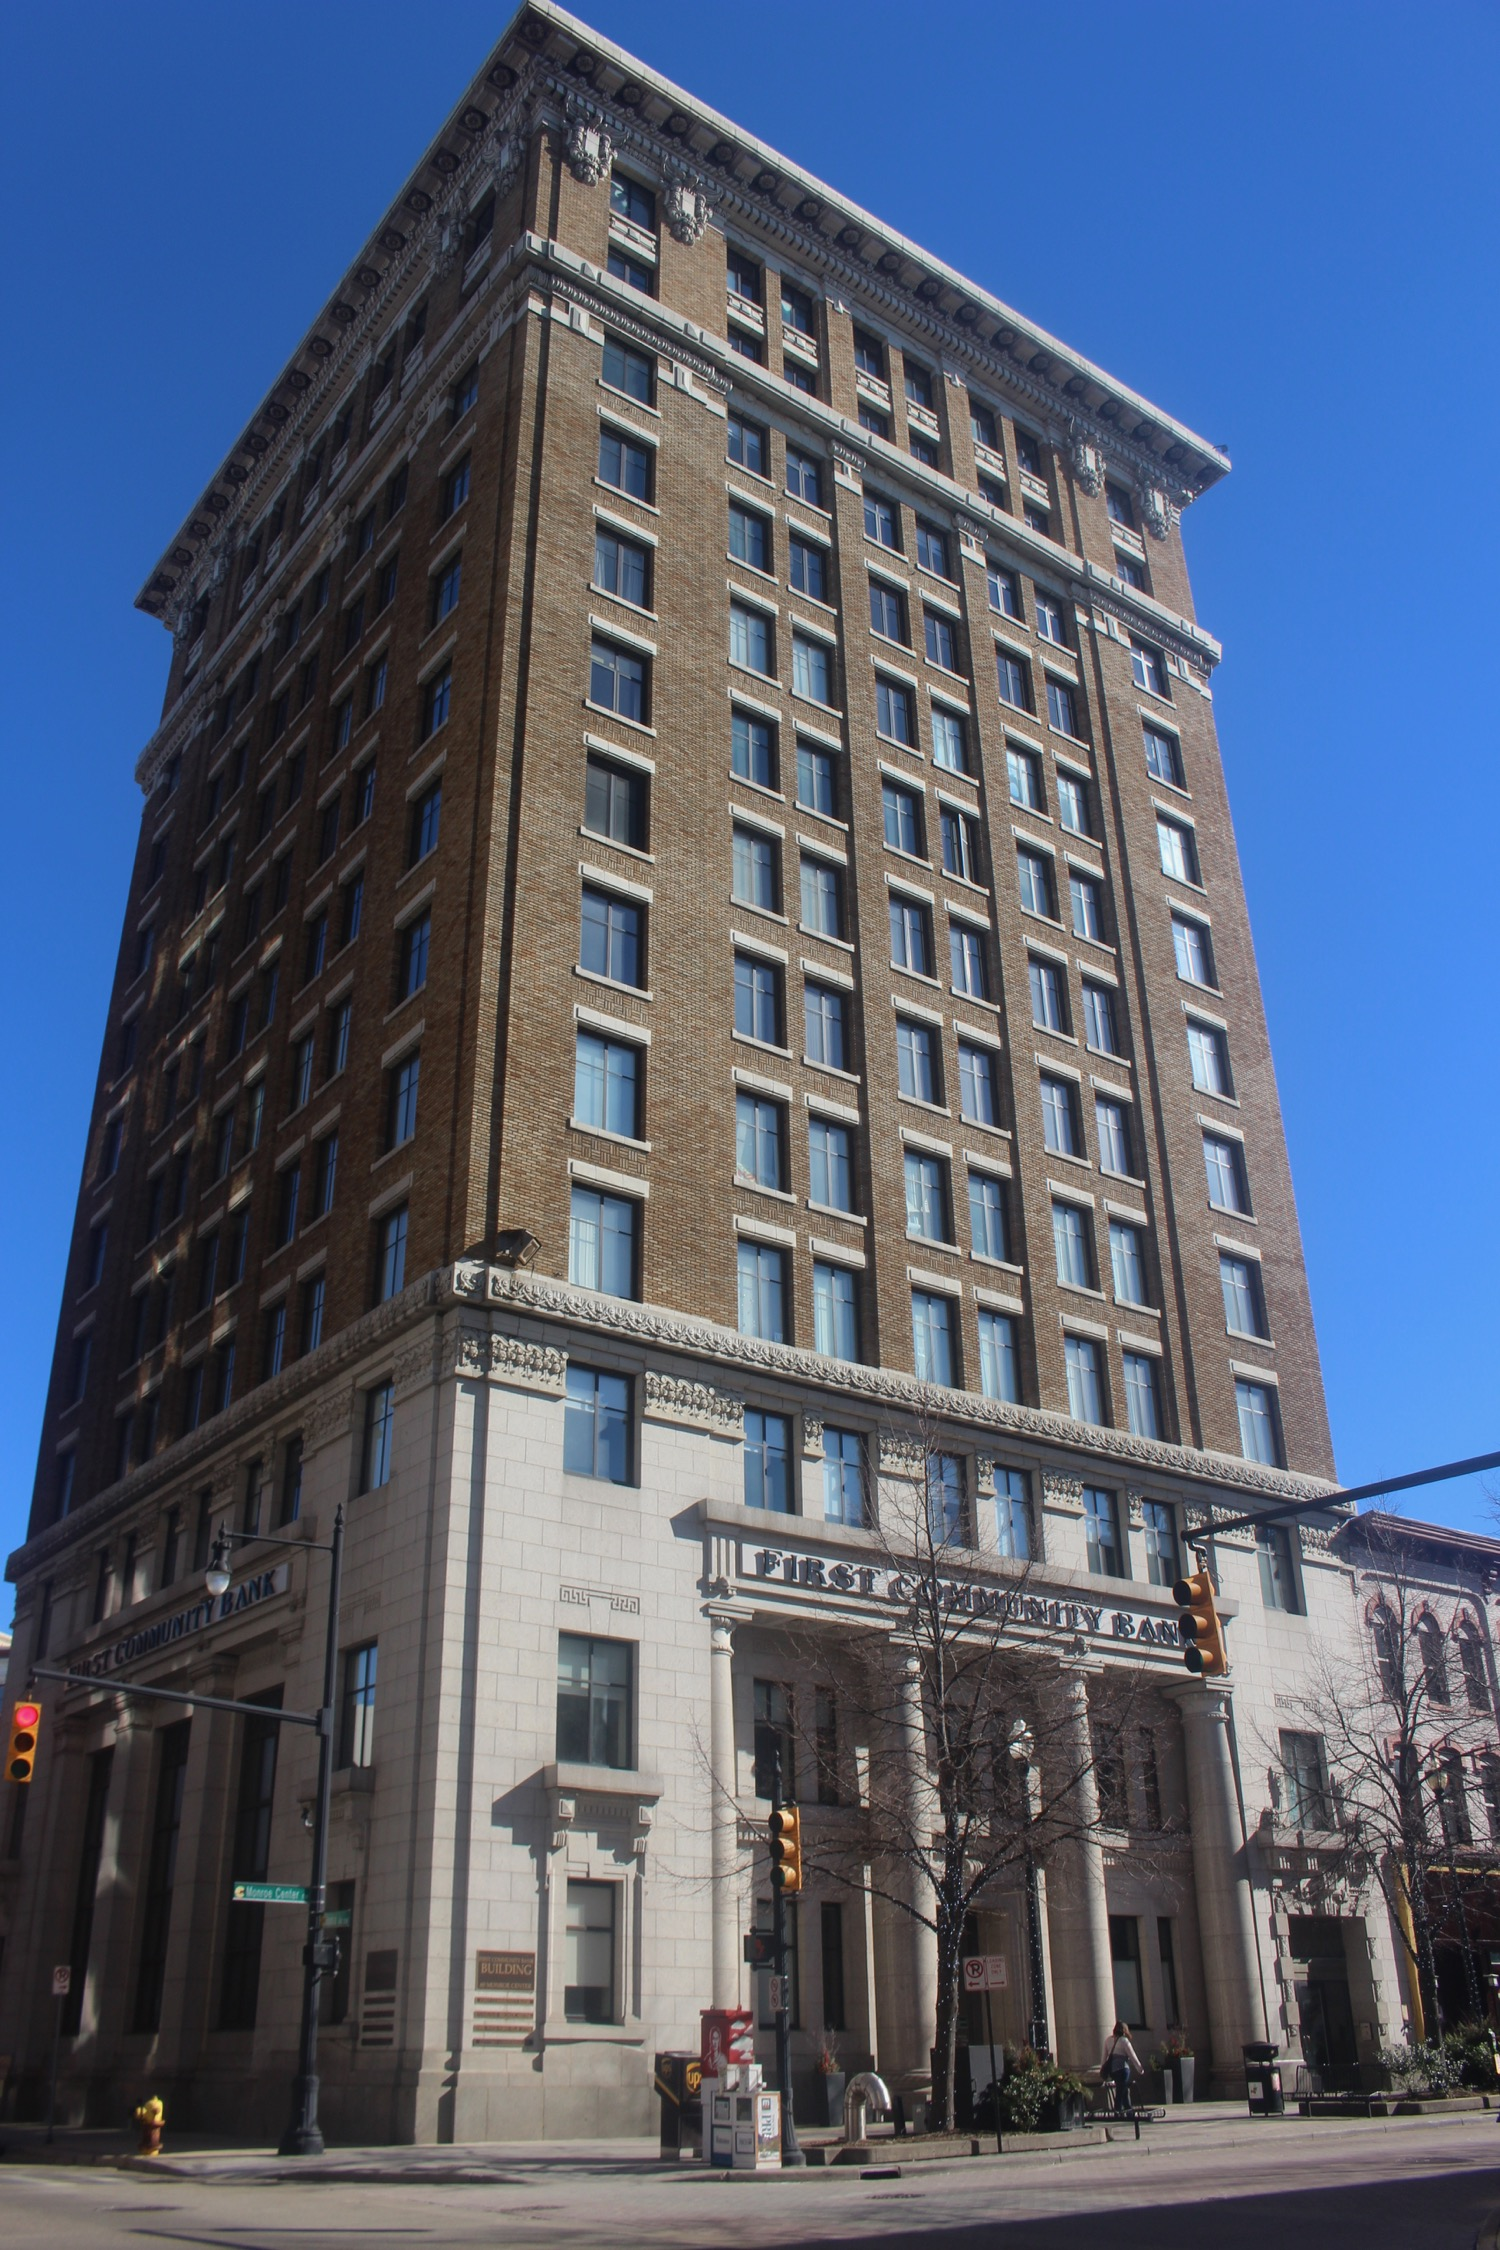 66 MONROE CENTER NW - GRAND RAPIDS SAVINGS BANK